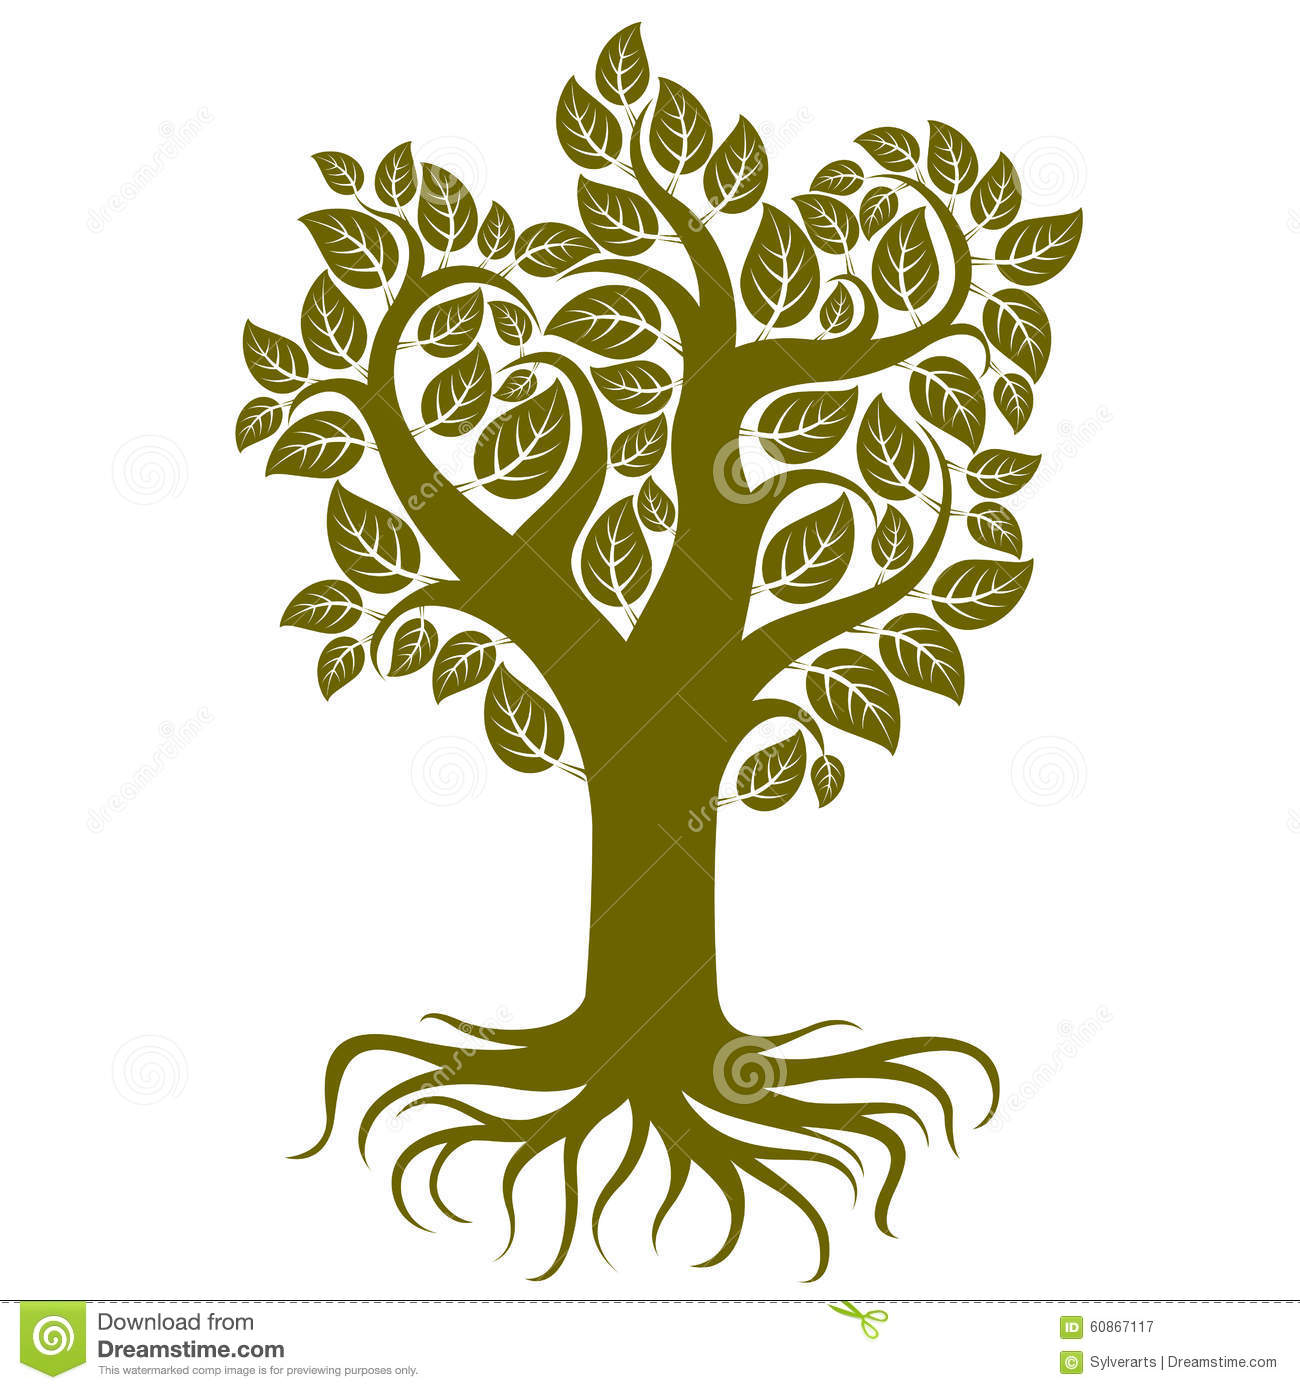 Vector Art Illustration Of Tree With Strong Roots Stock Vector